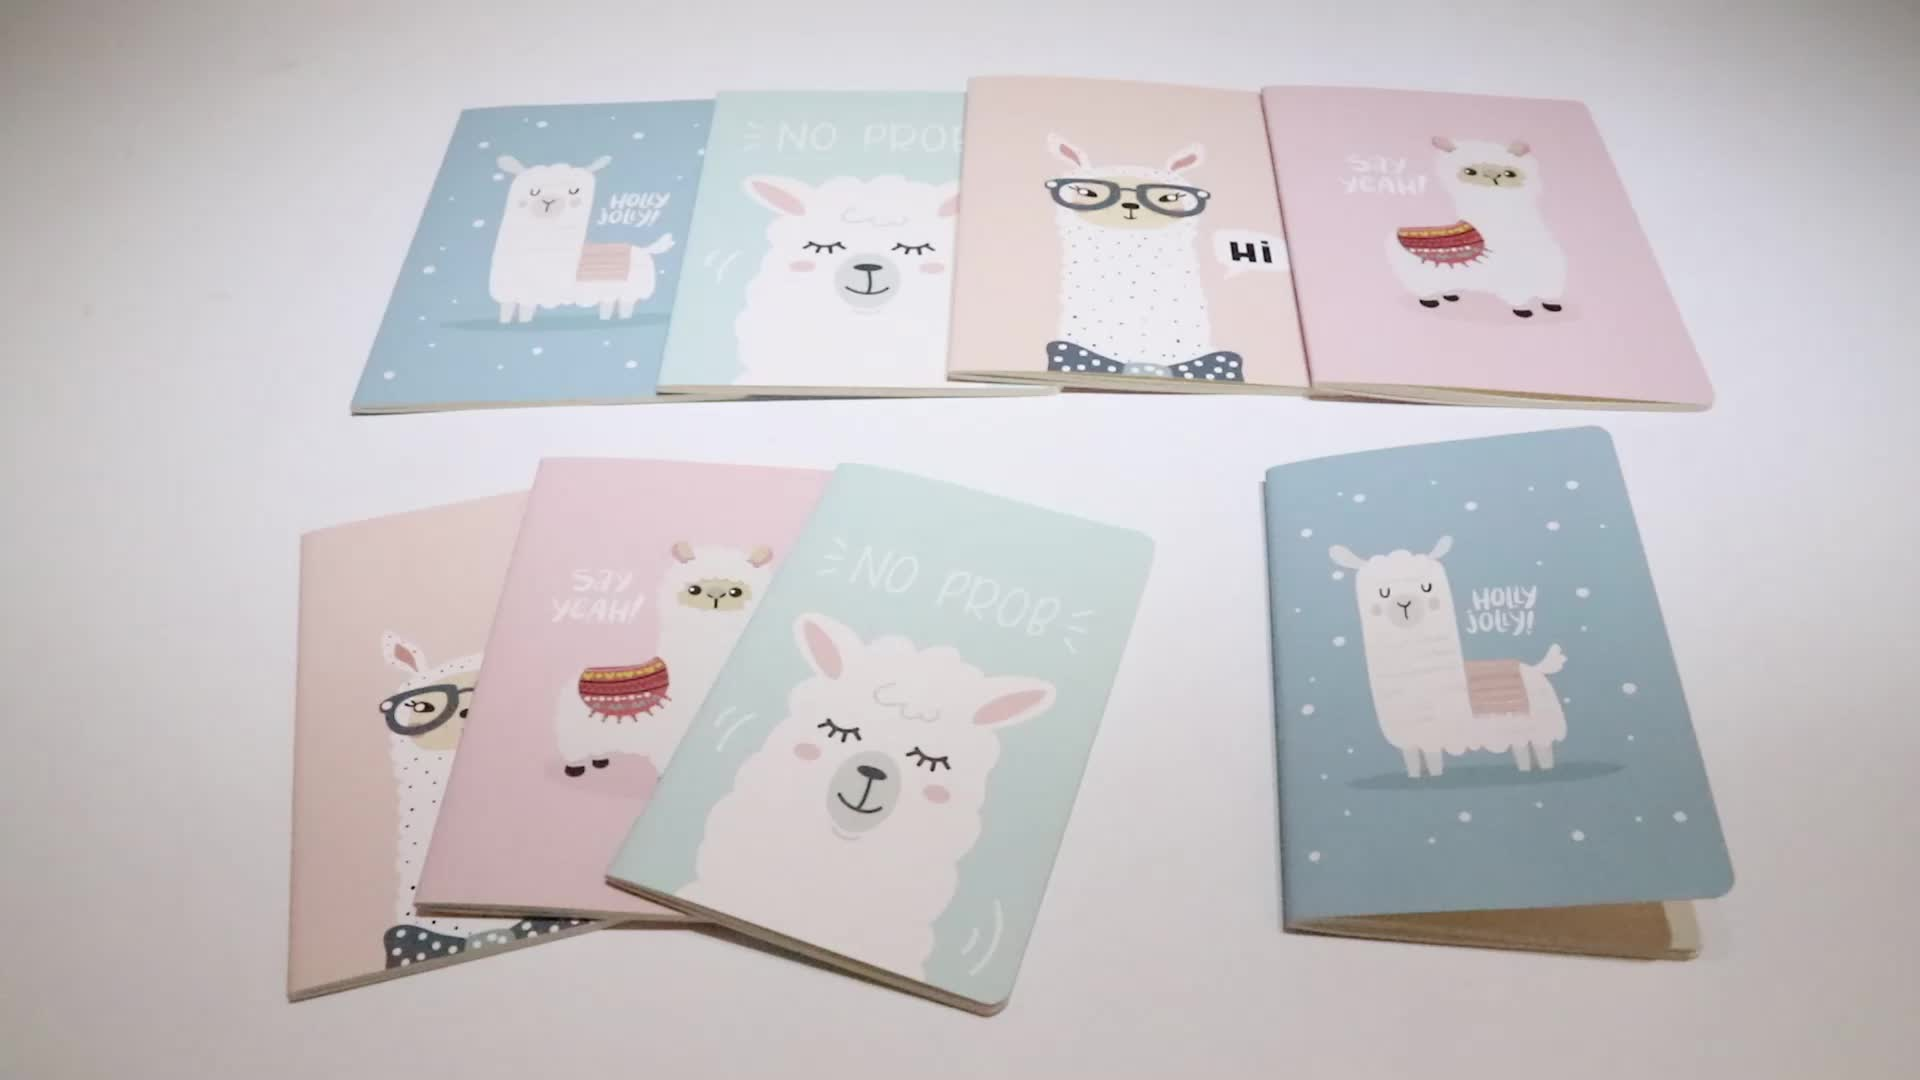 Top sale kids stationery set soft cover paper notebooks for students cartoon printed cheap custom notepads